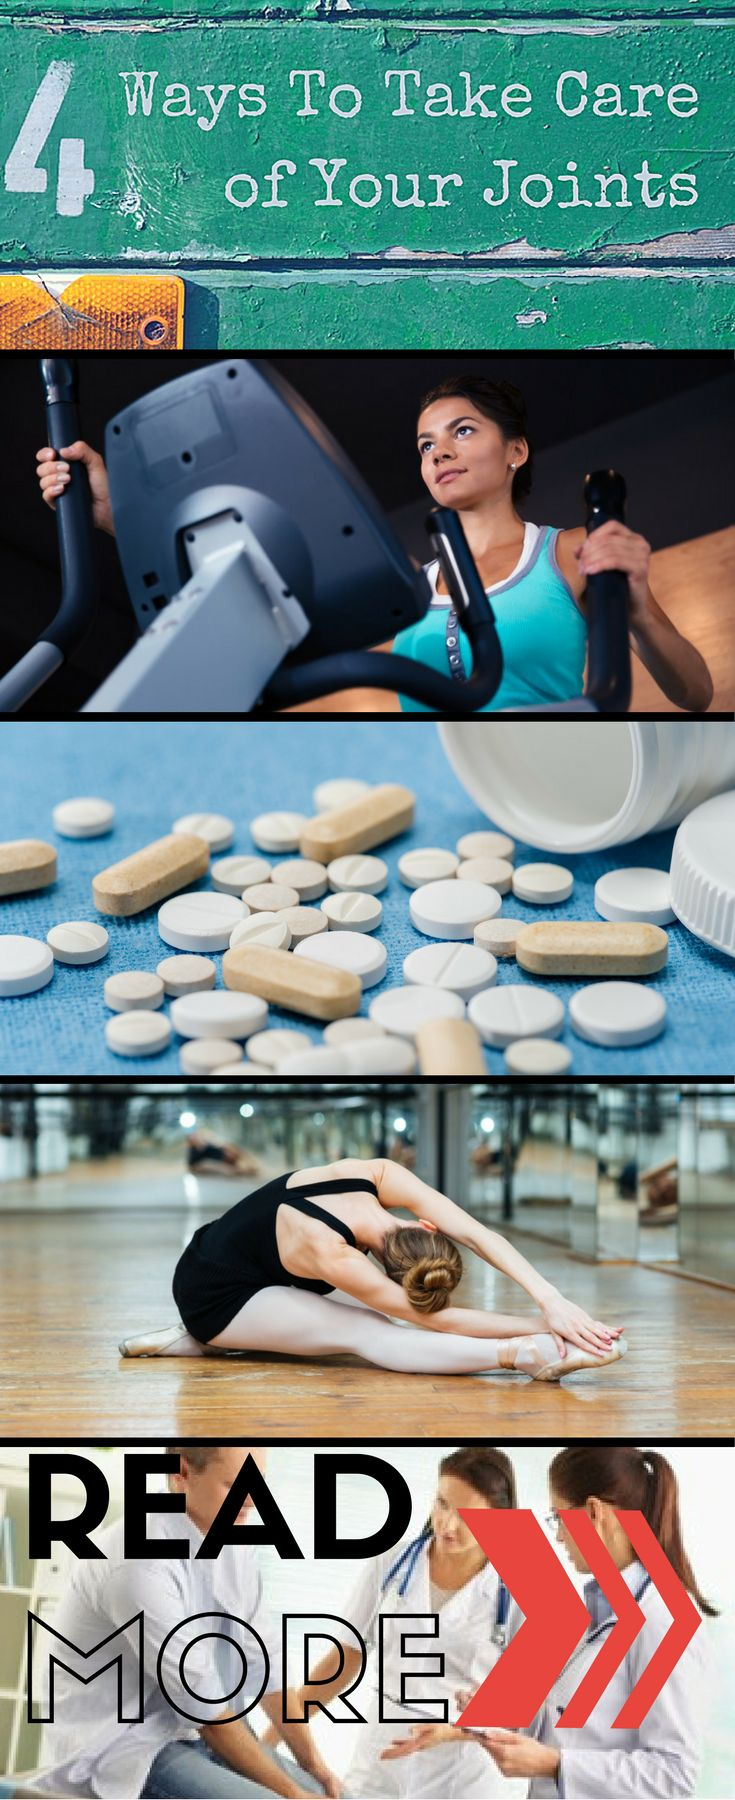 Learn about the different natural ways to help deal with joint pain and arthritis. Some tips are to get more exercise and take certain supplements (not medicine). Read more on the YesWellness Blog.